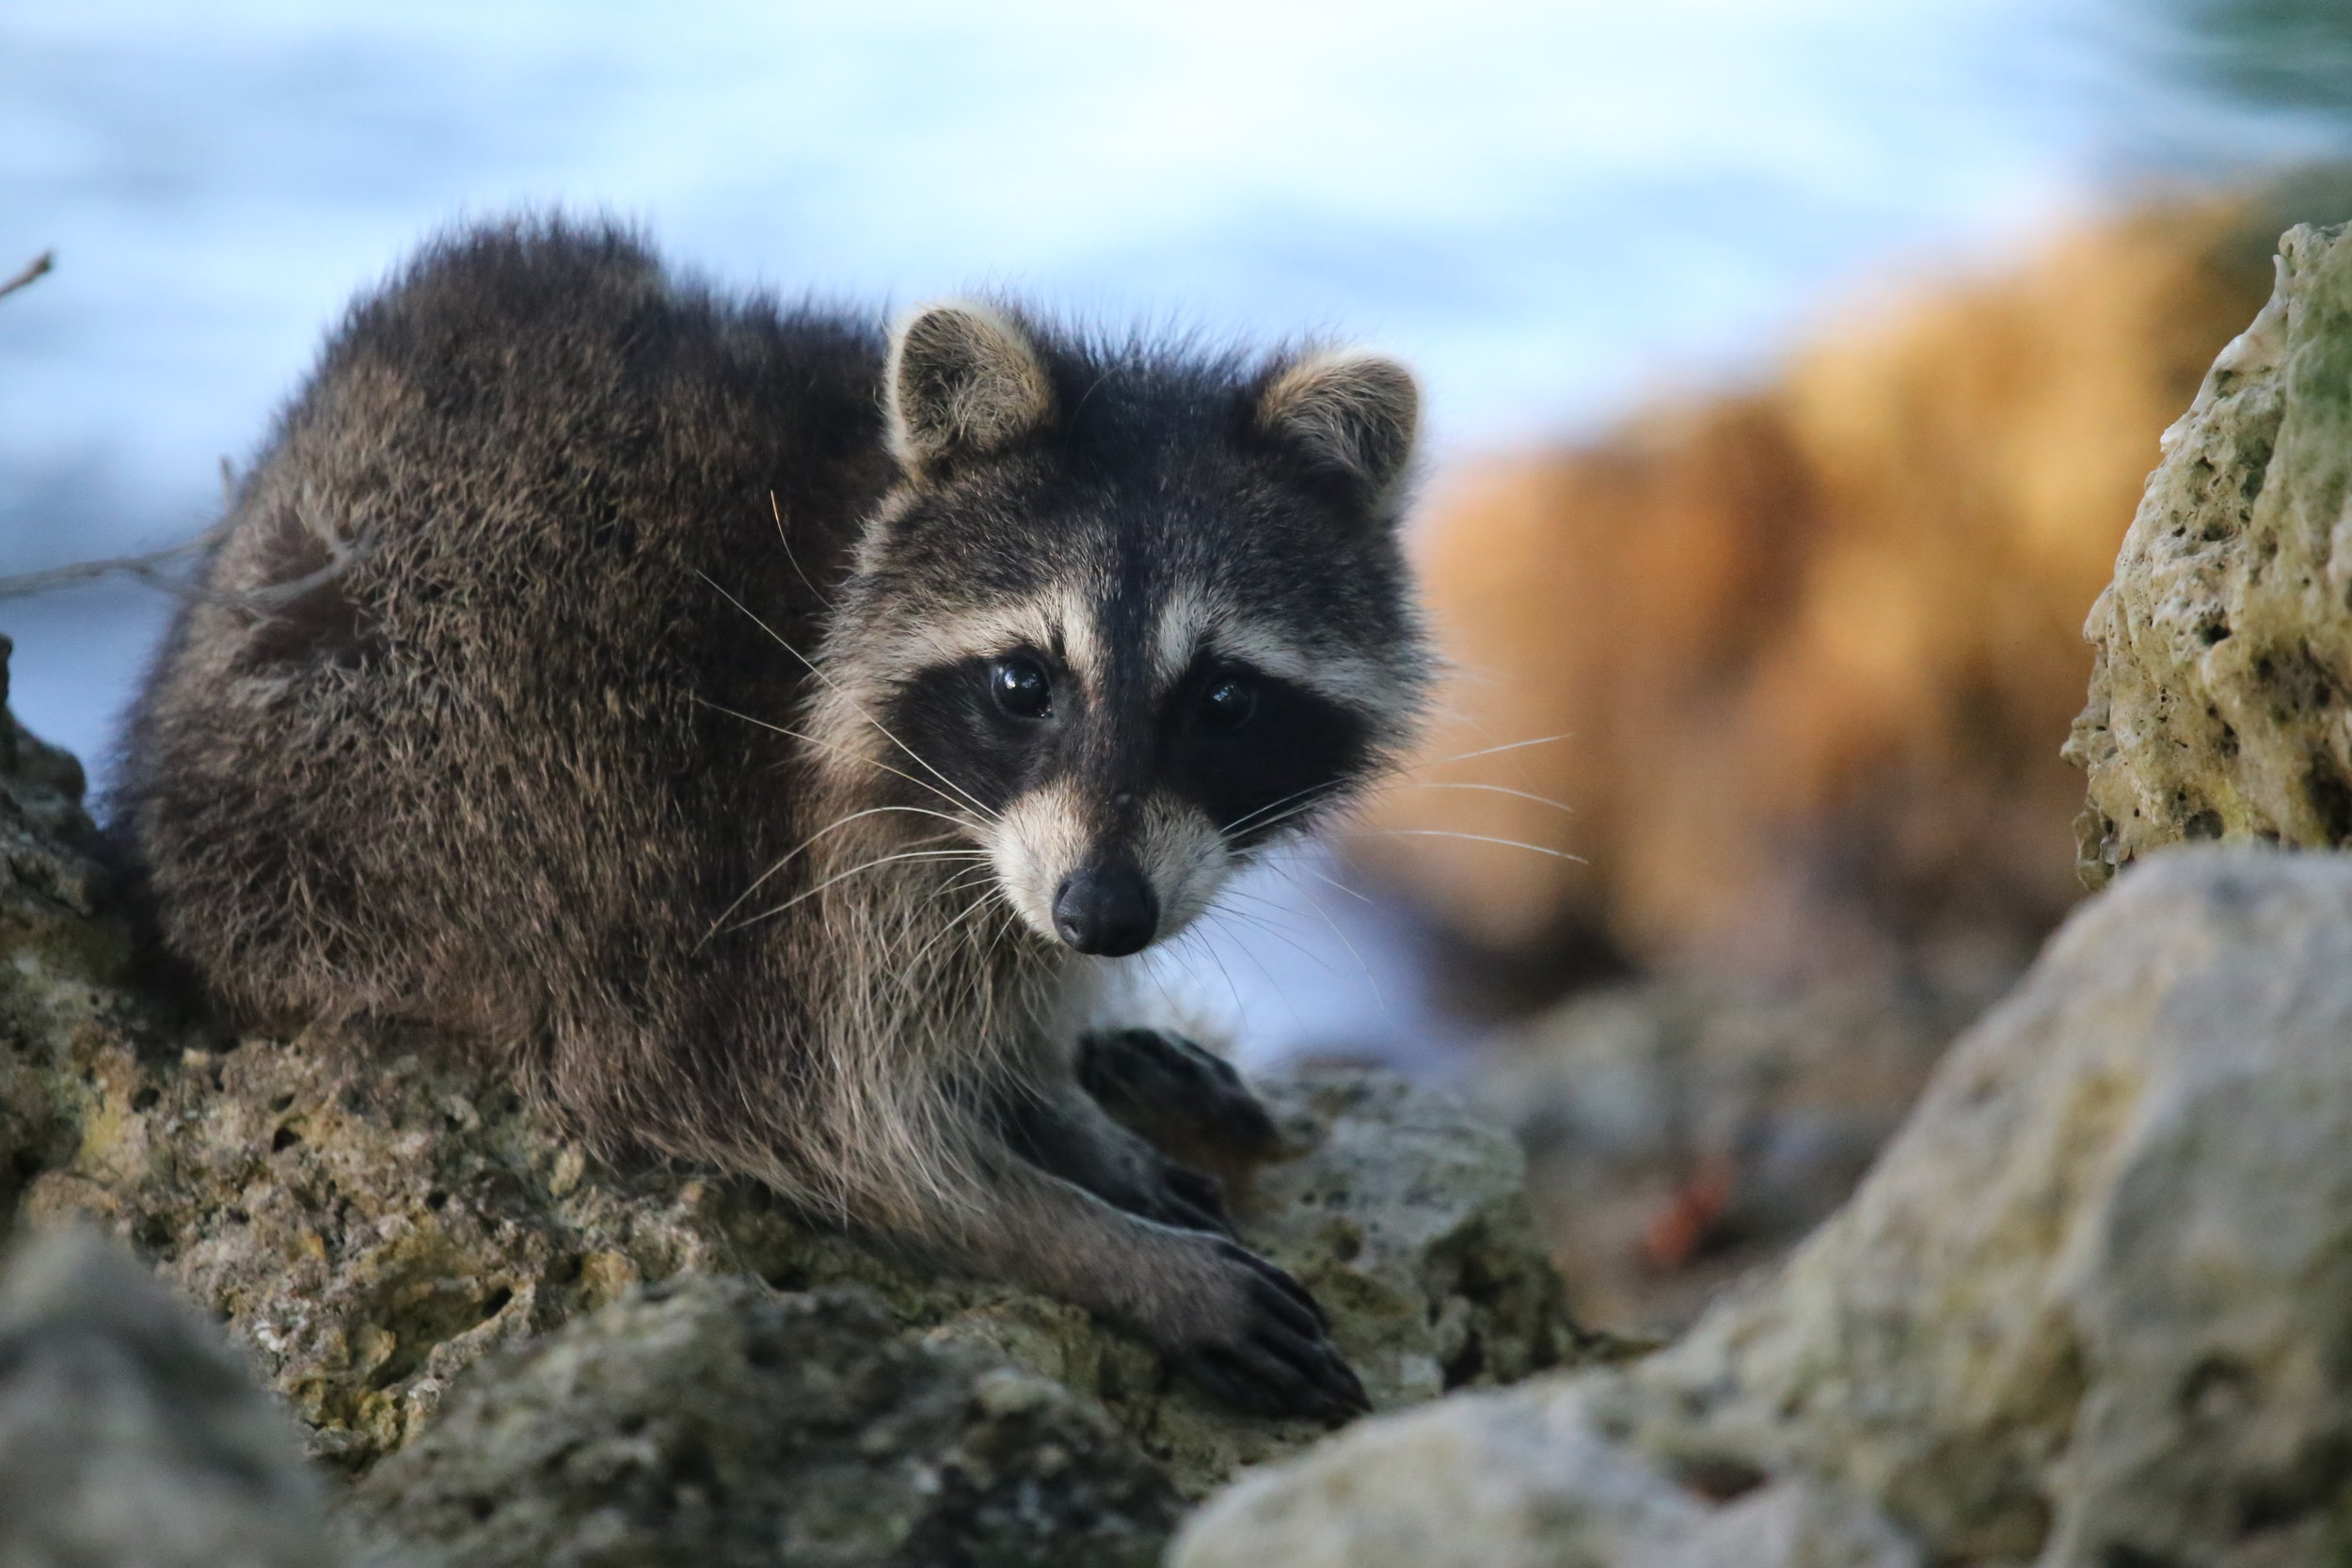 A small racoon looks innocently at the camera. Photo by cuatrok77